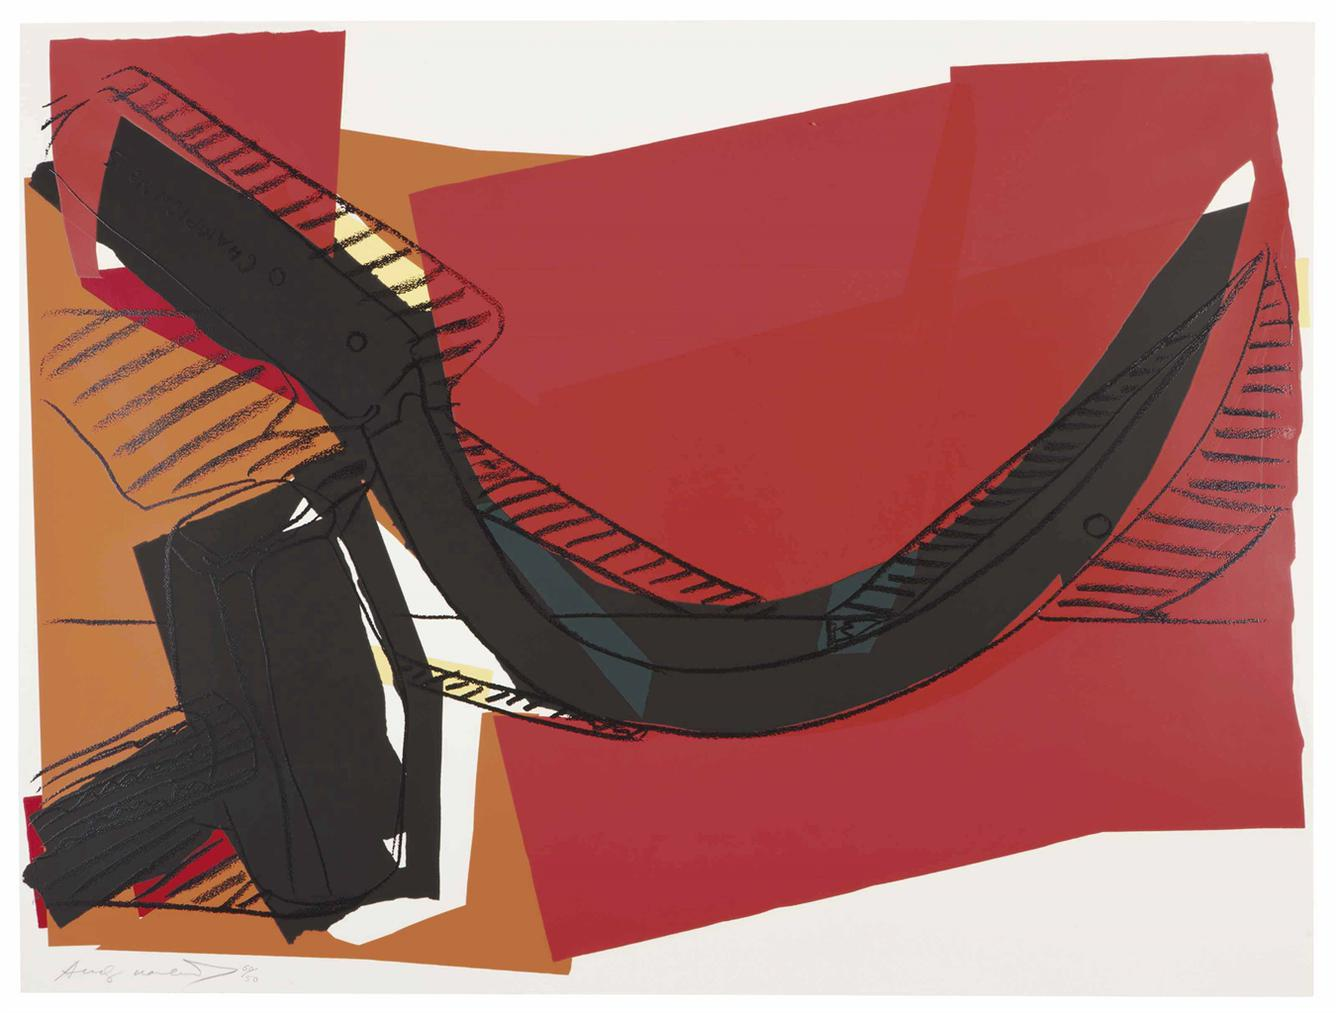 Andy Warhol-Hammer And Sickle: One Plate-1977